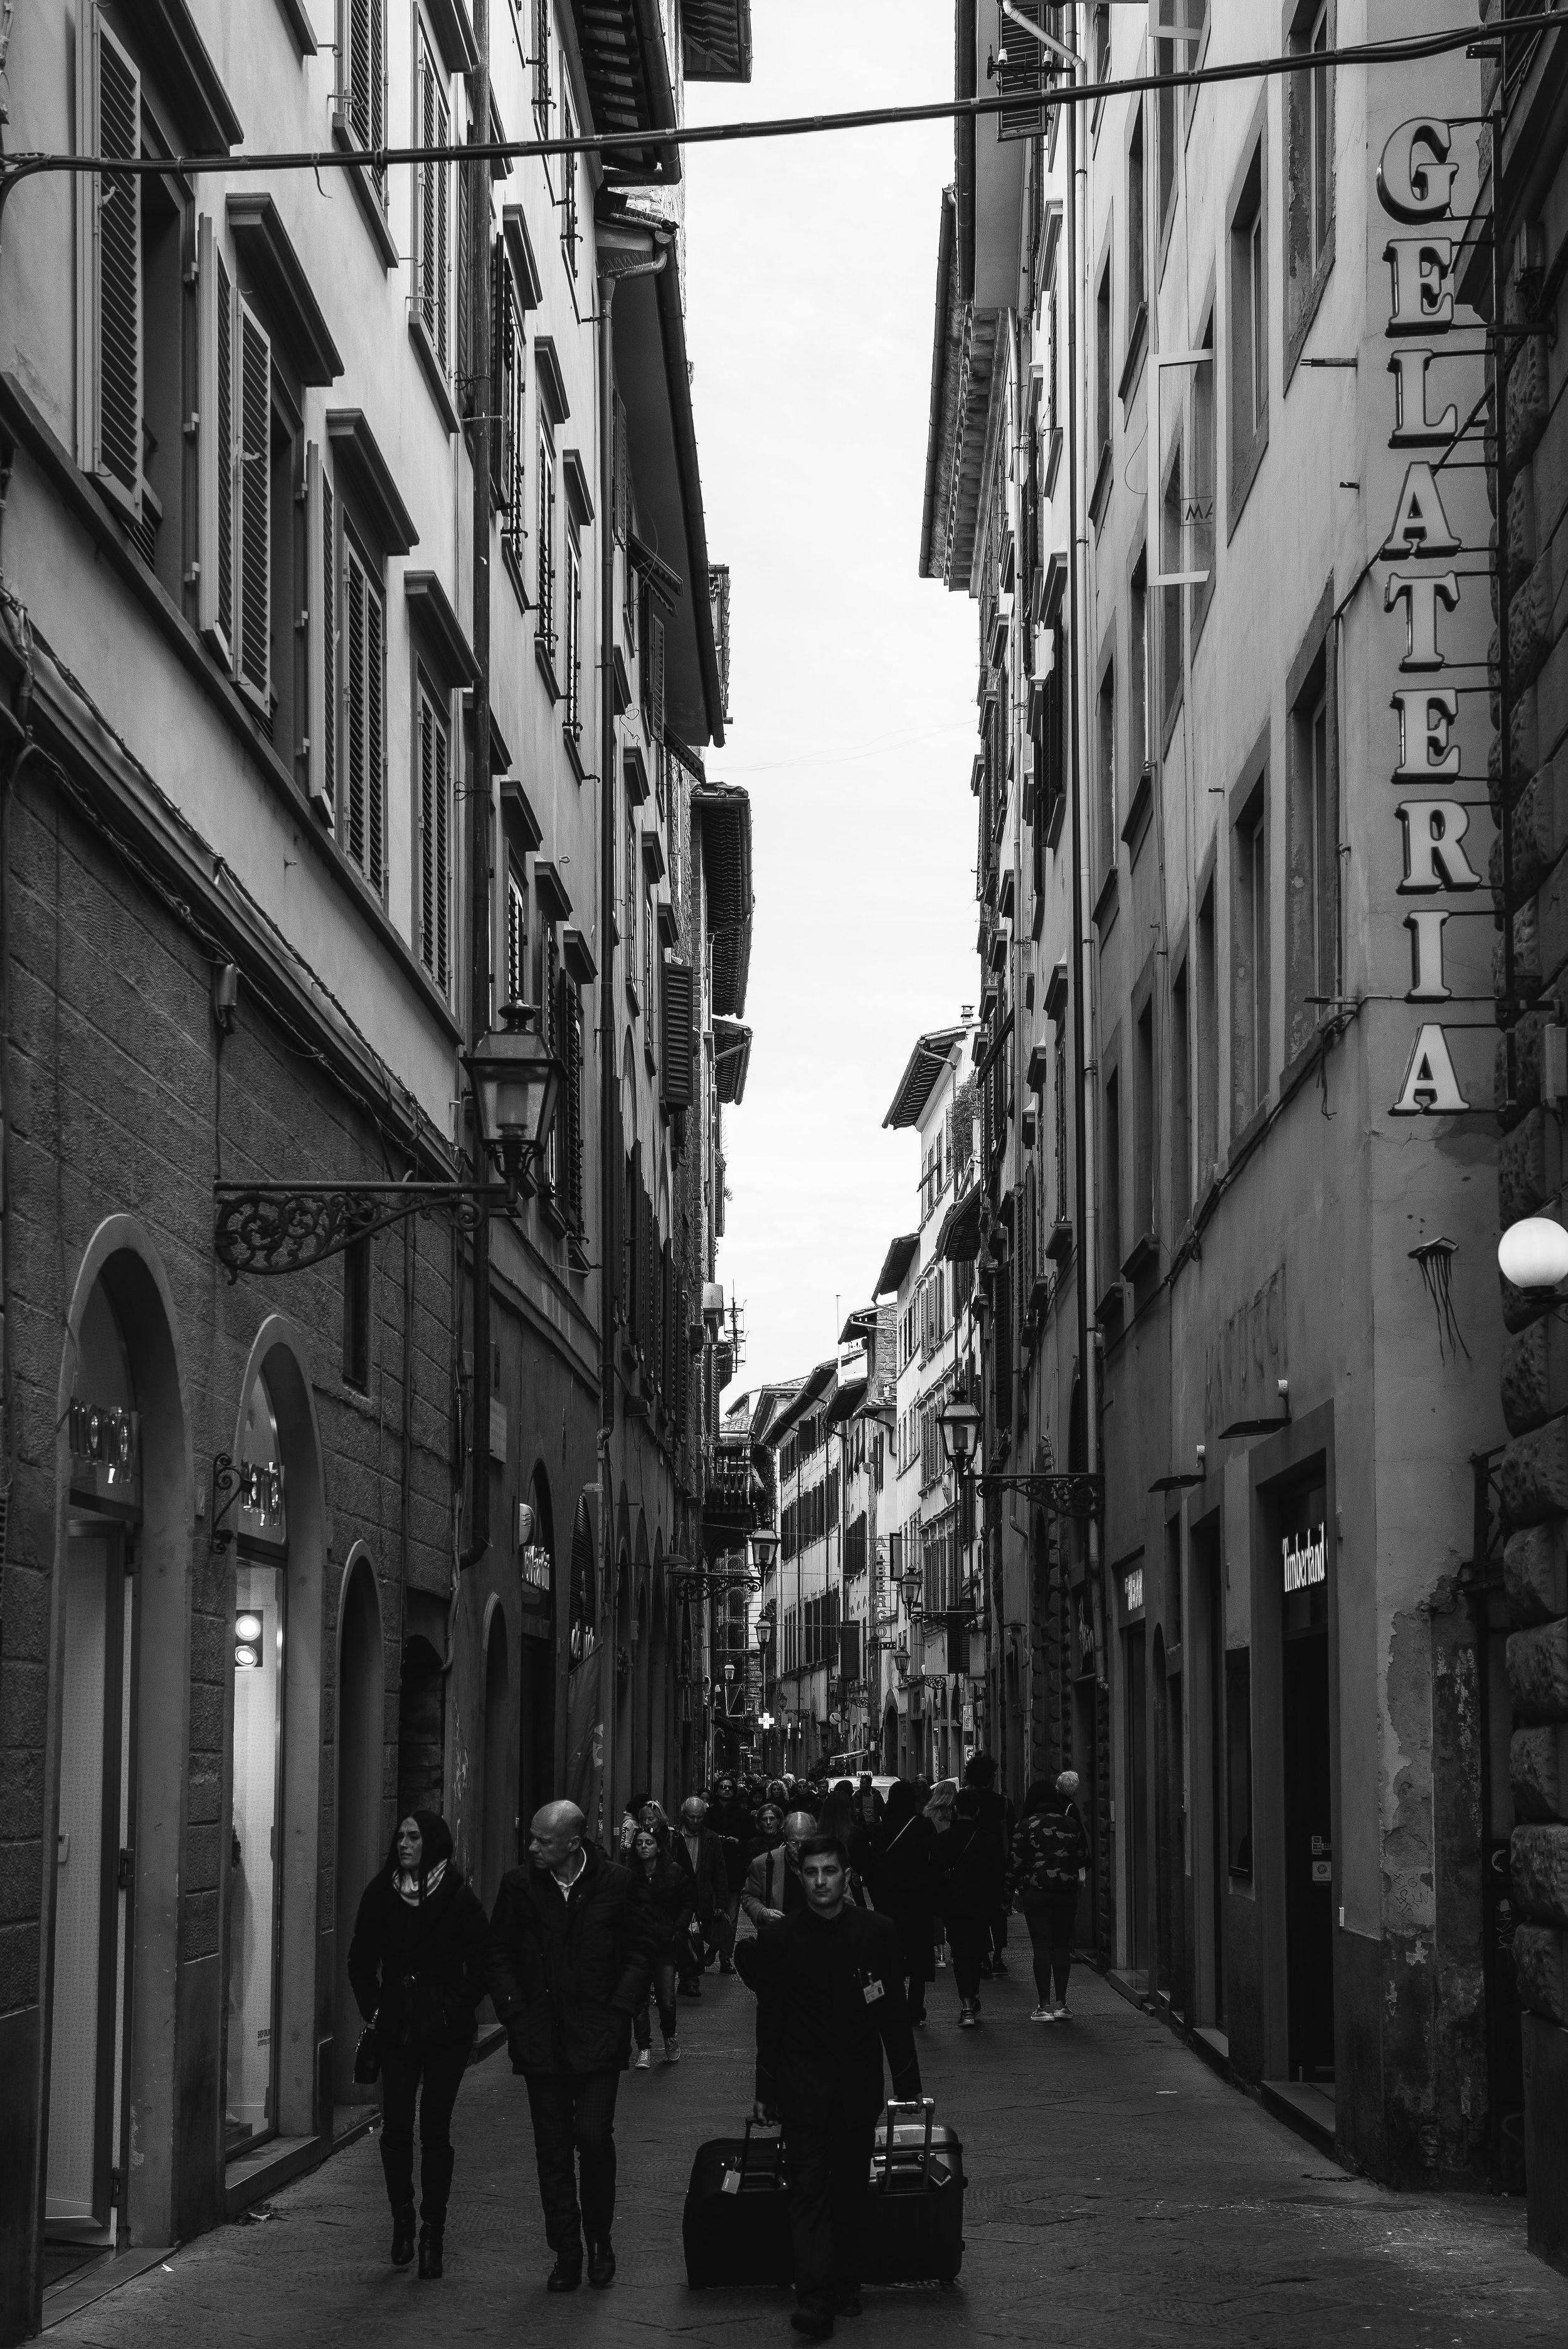 Busy FLorence Italy Alley.jpg